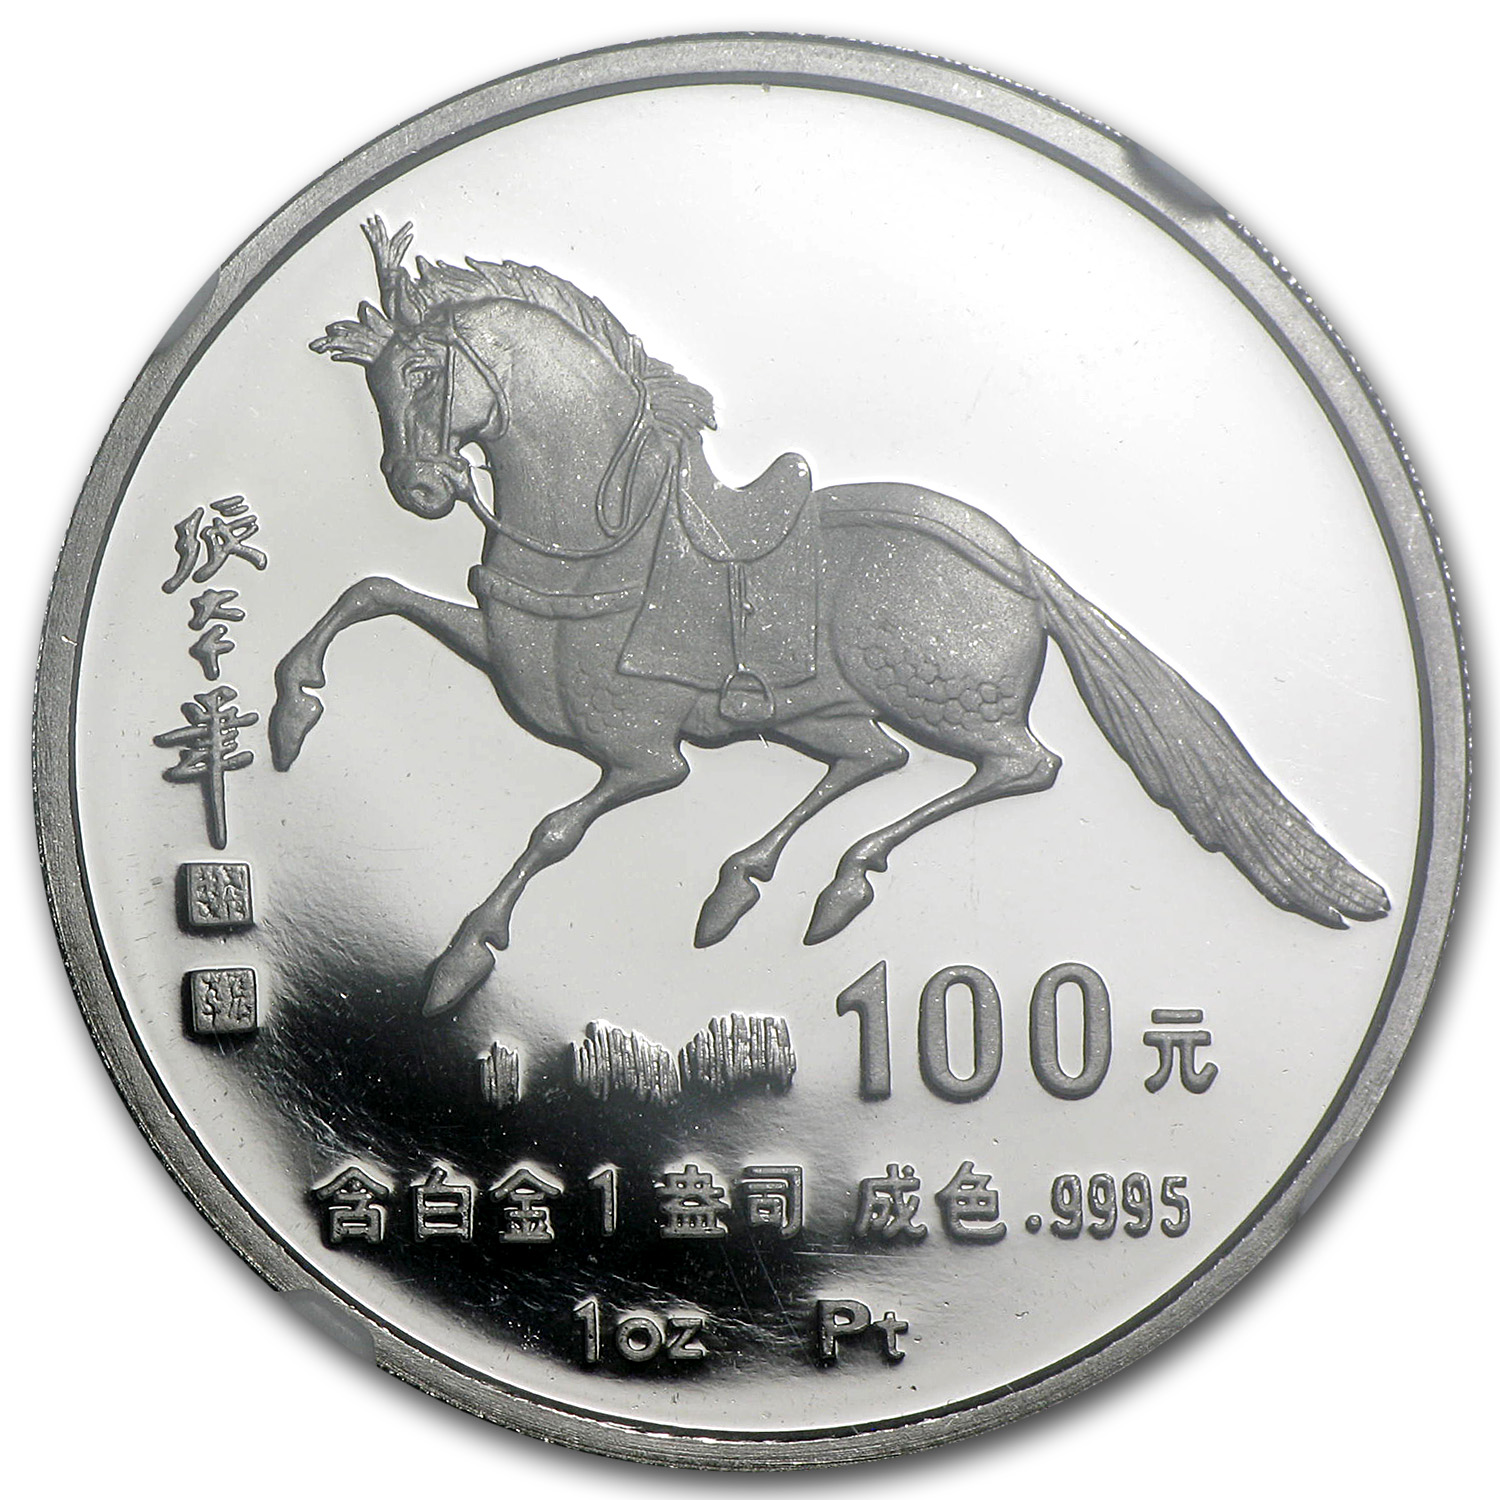 1990 China 1 oz Proof Platinum Horse 100 Yuan PF-69 NGC